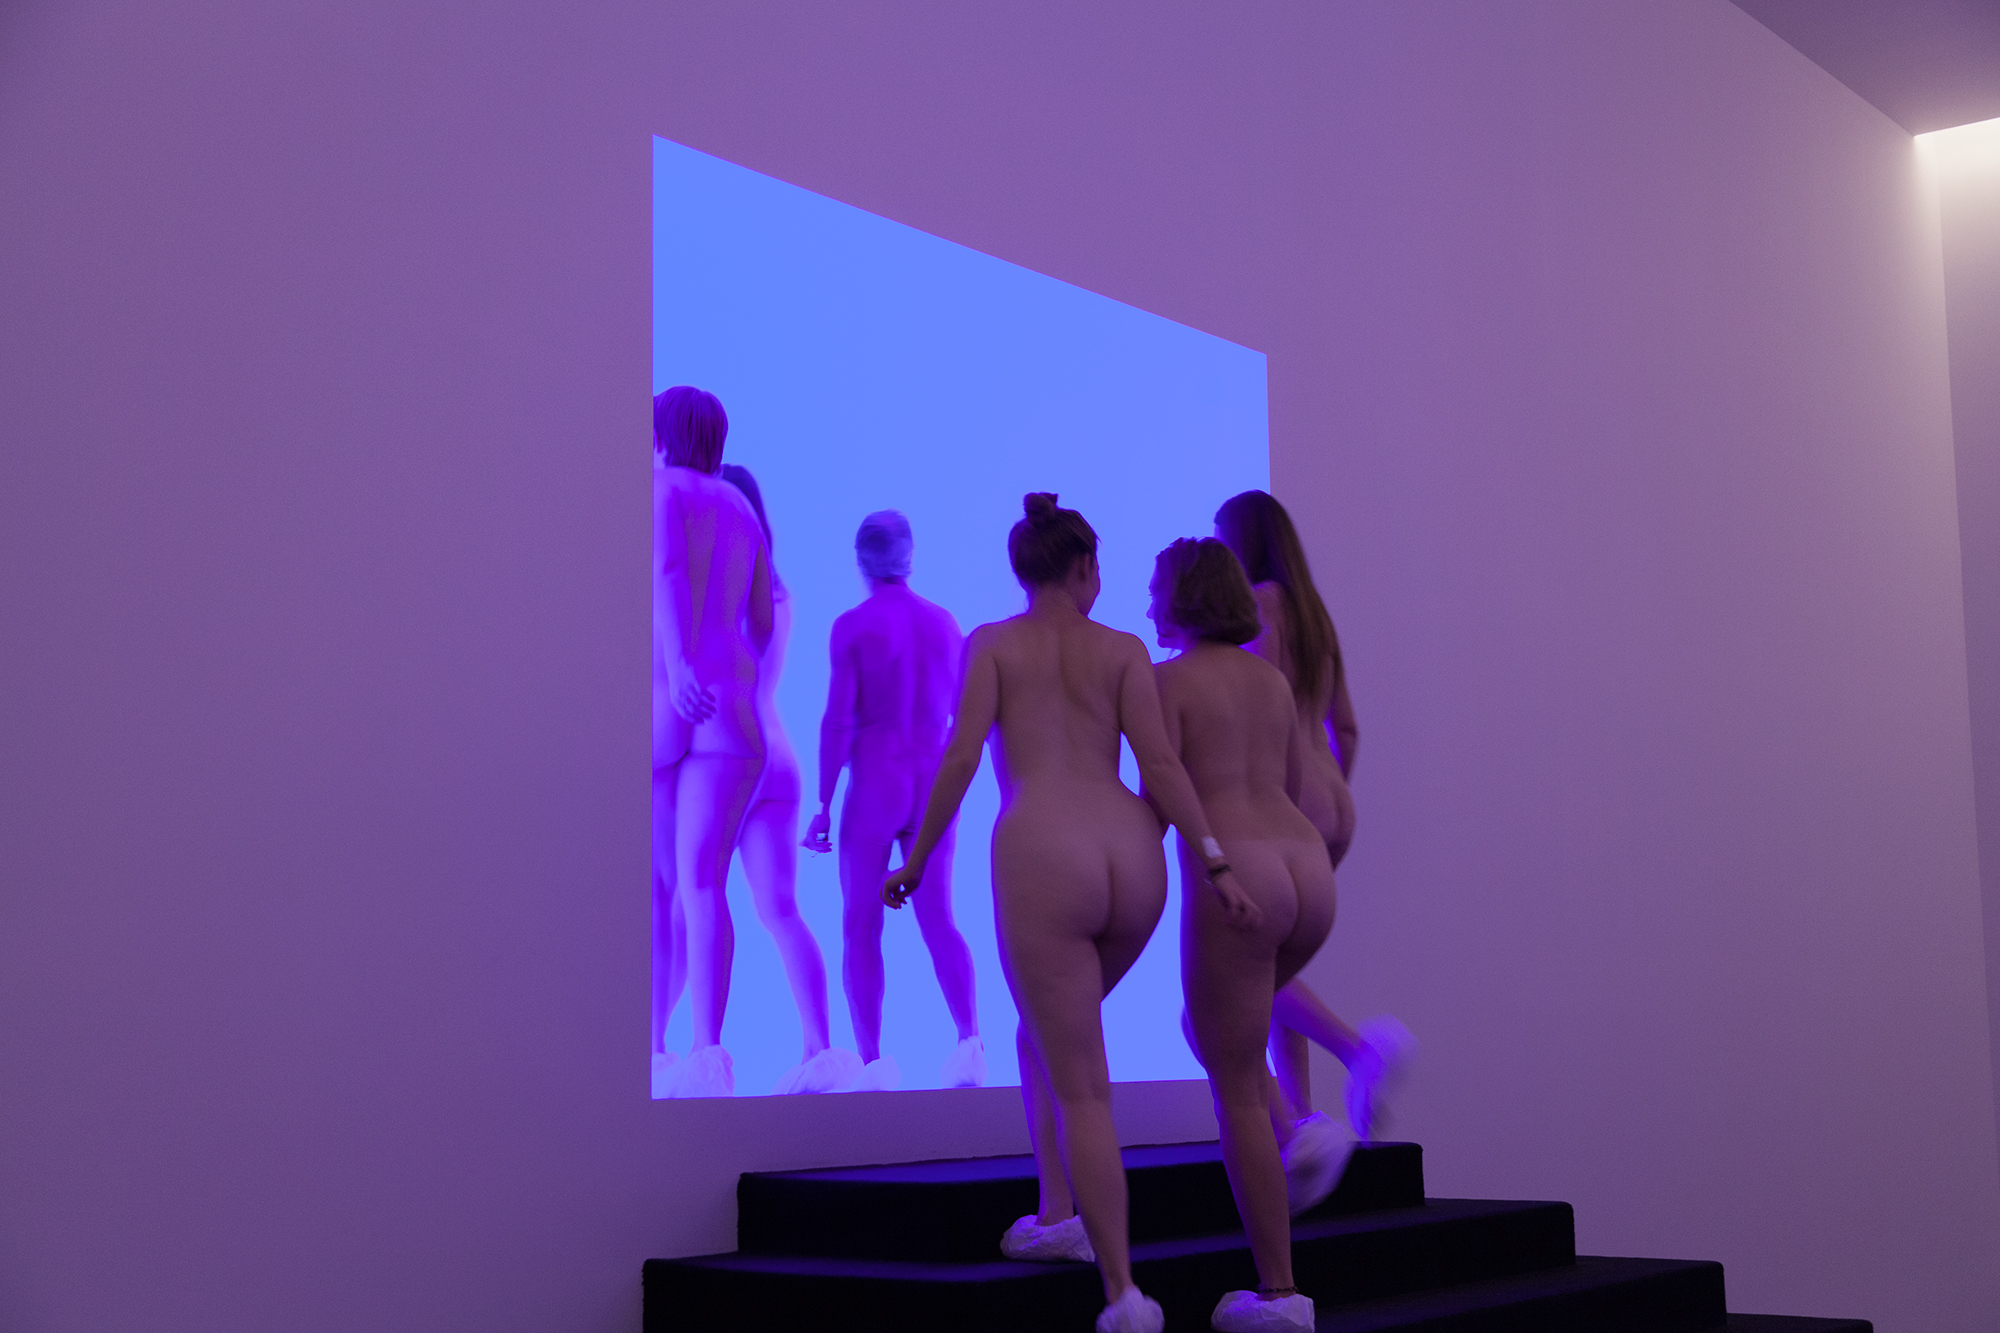 James Turrell Nude: the naked truth